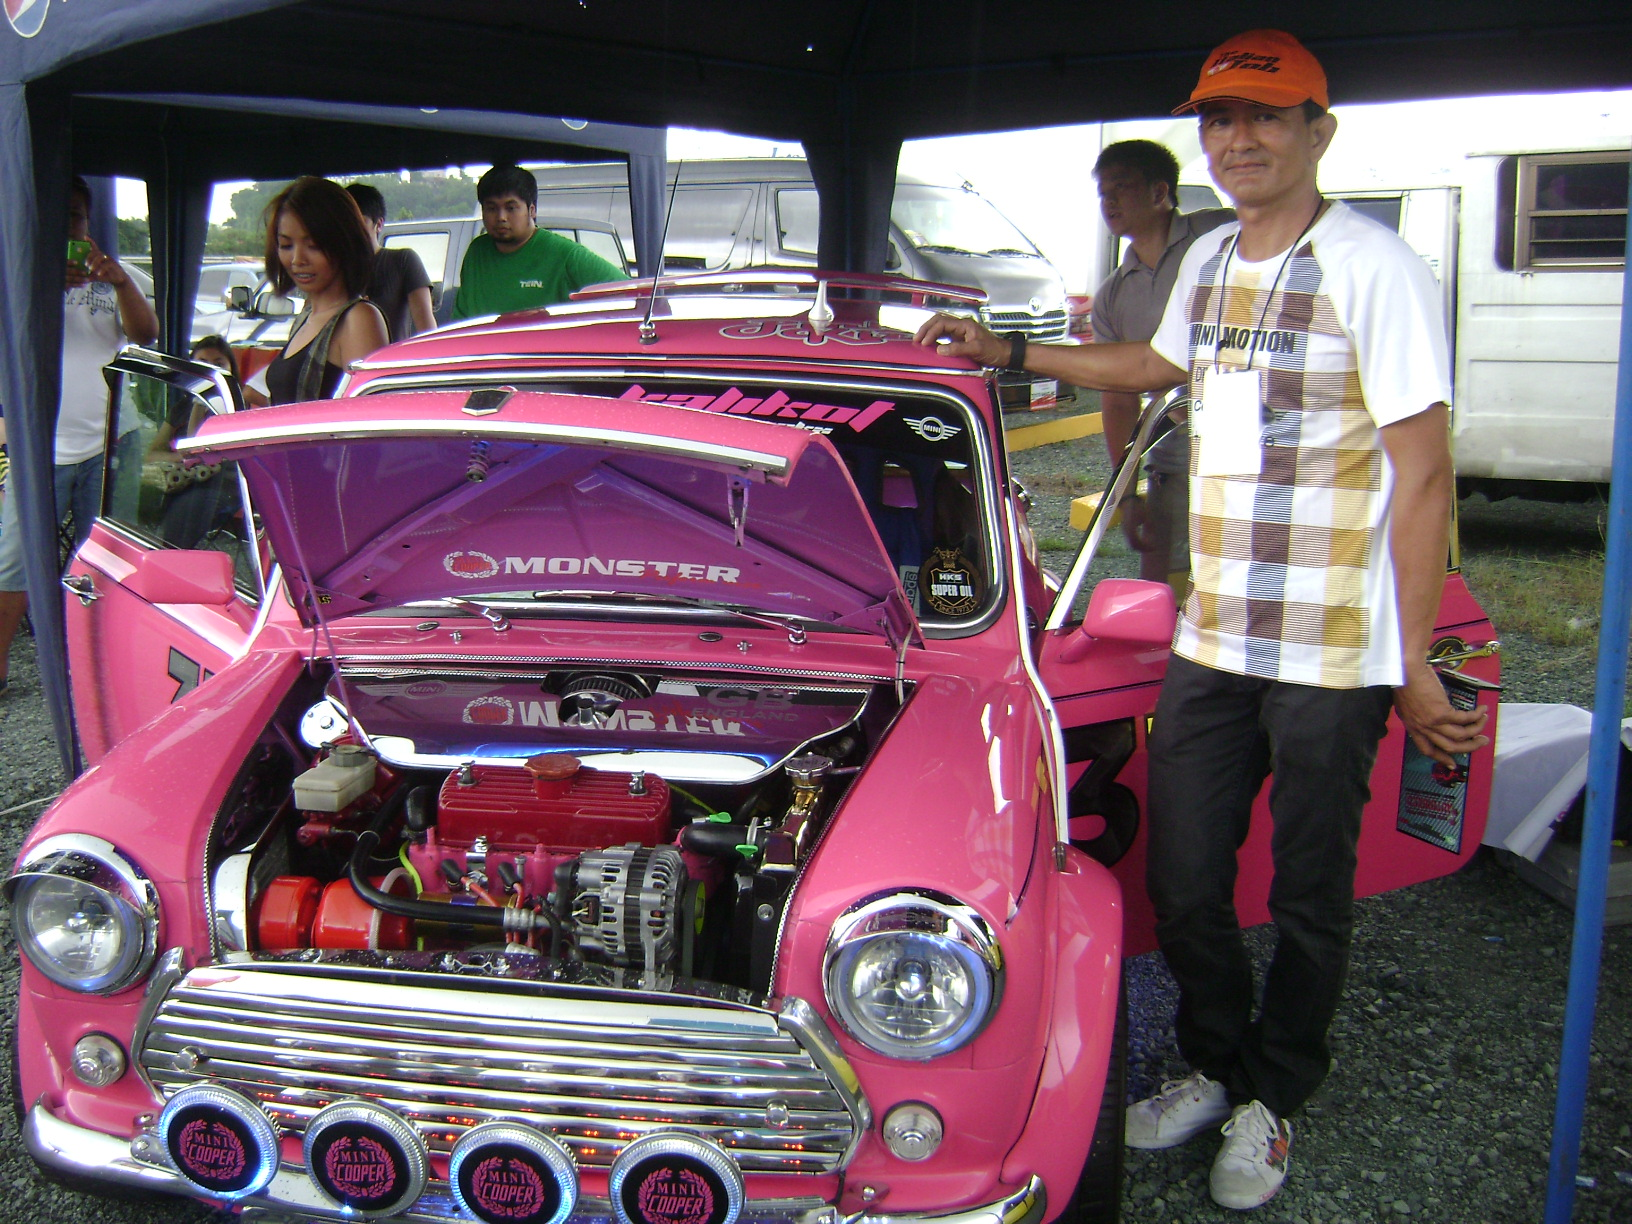 Mini Cooper S Owners Club R A C E 1st Car Show In Rizal Thecomputerpsychotic